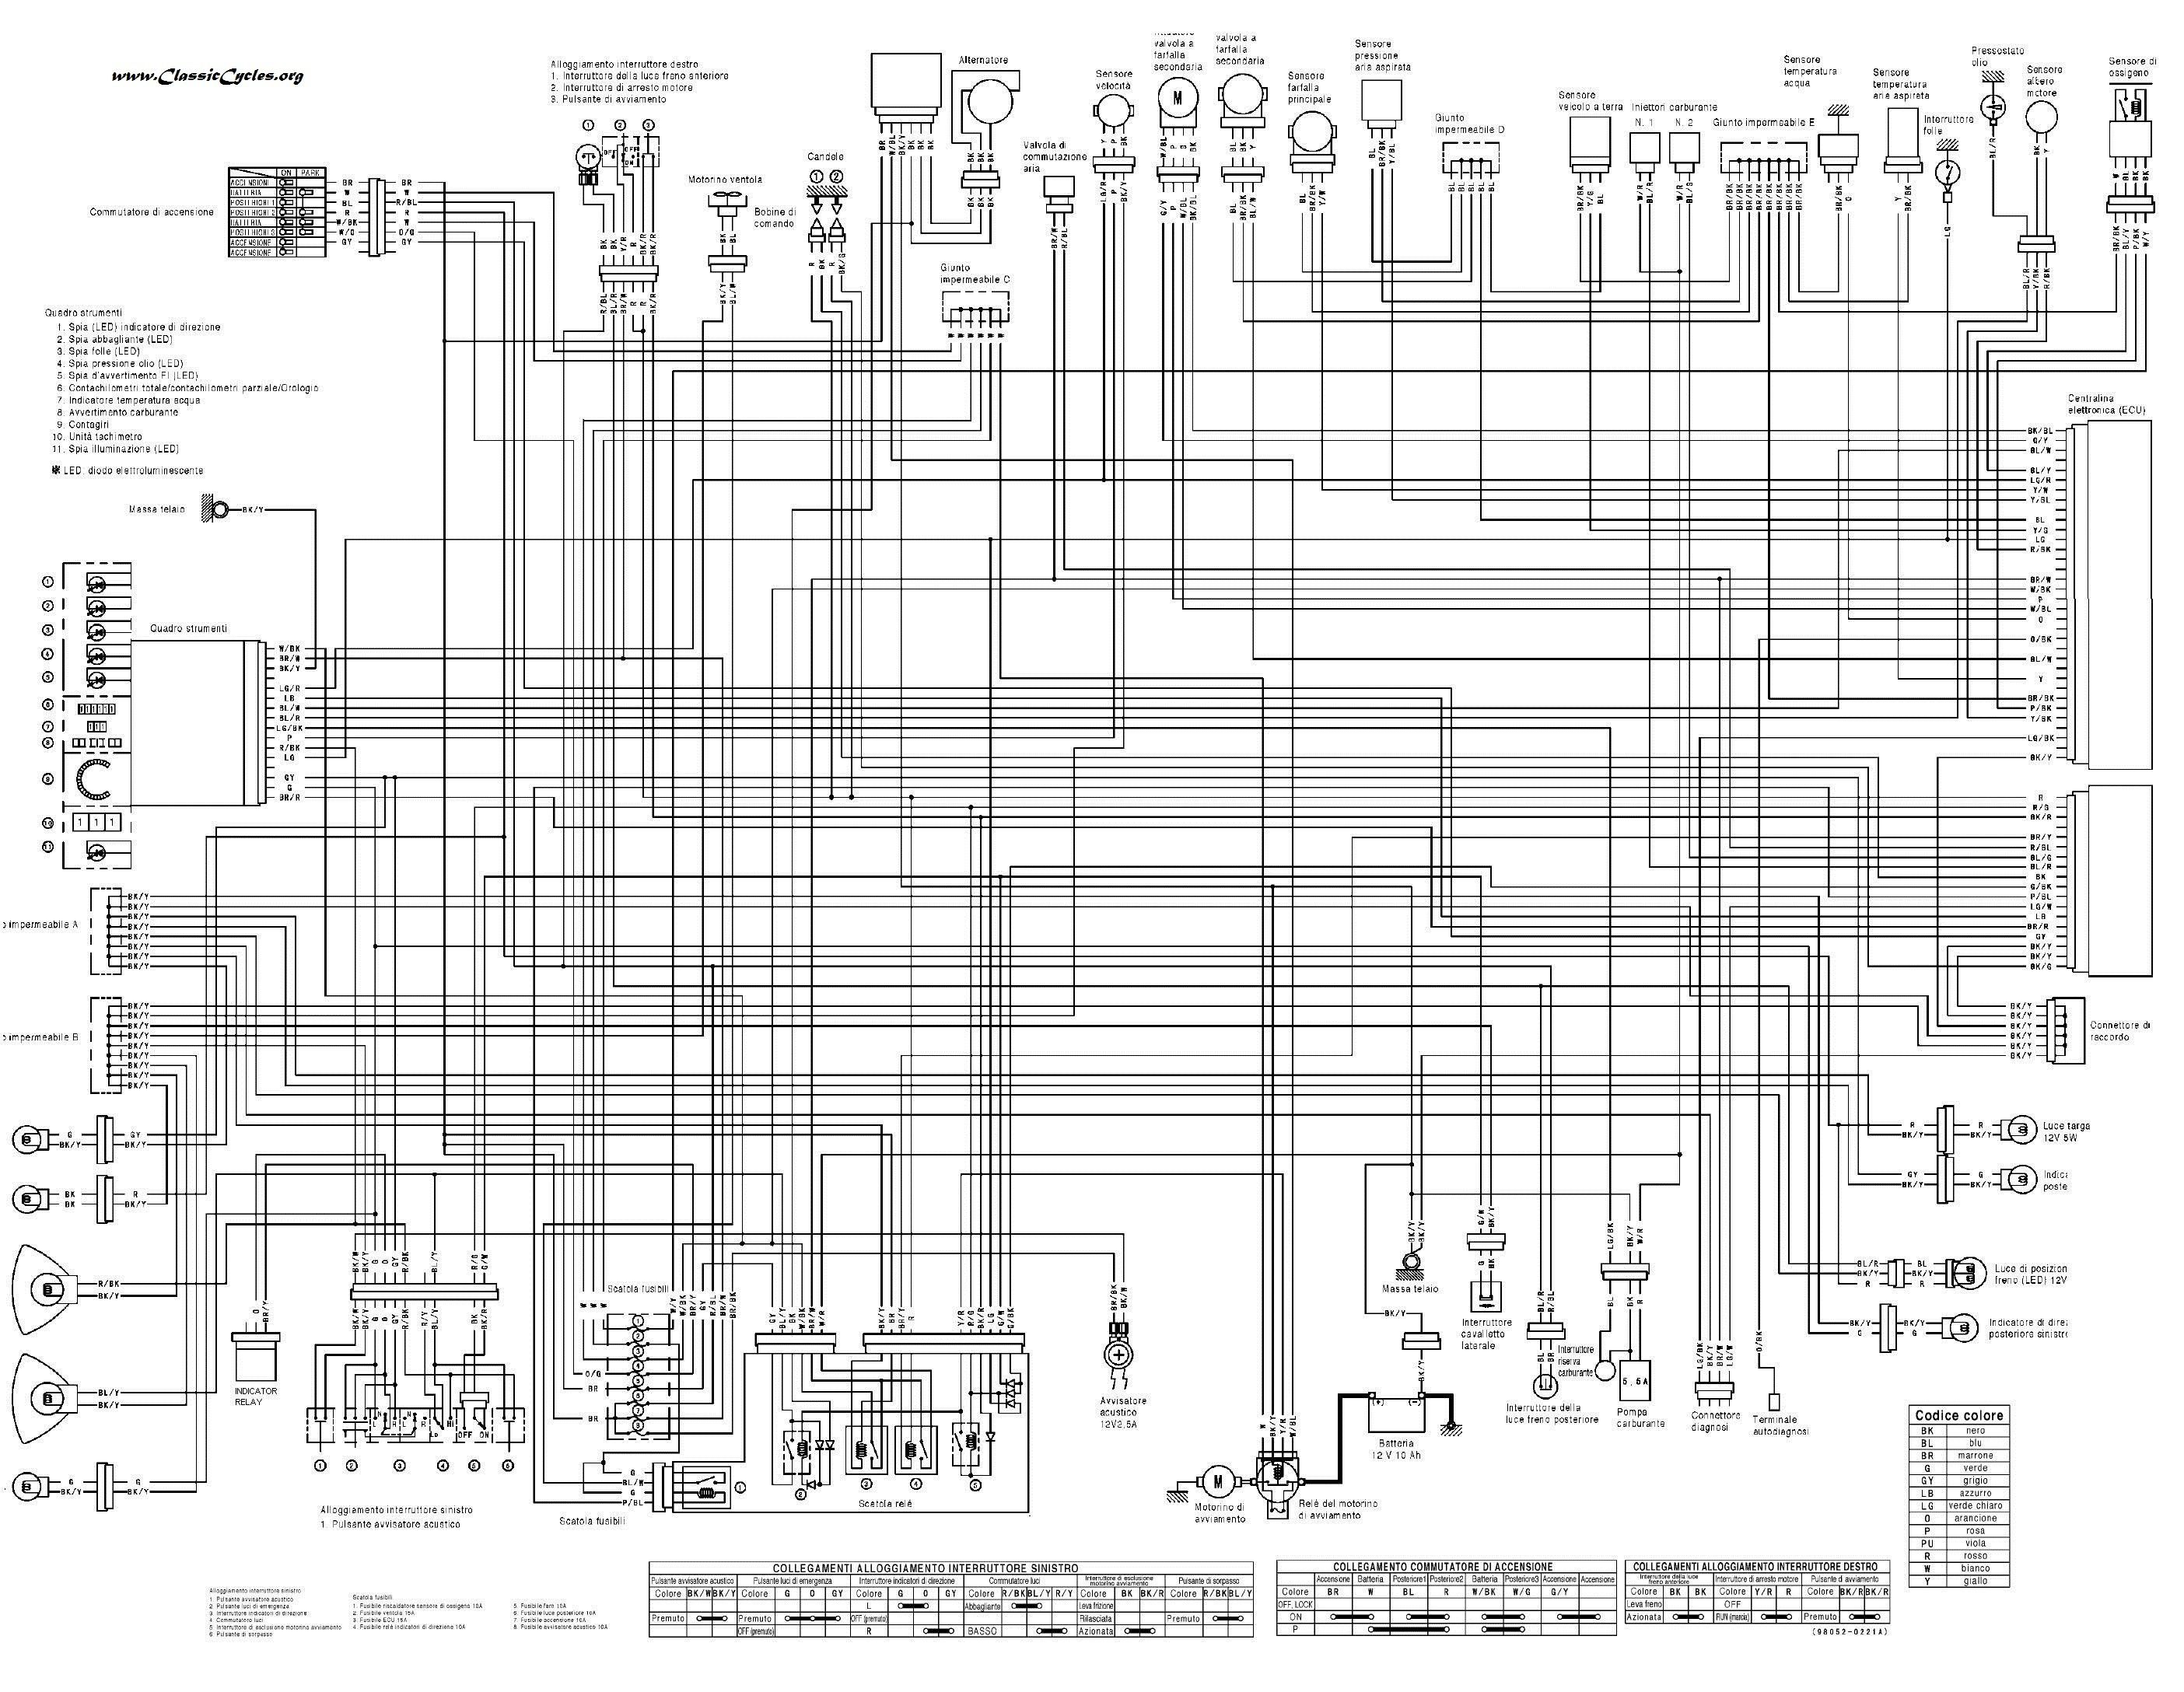 Motorcycle Electrical Diagram In 2020 Electrical Diagram Electrical Wiring Diagram House Wiring